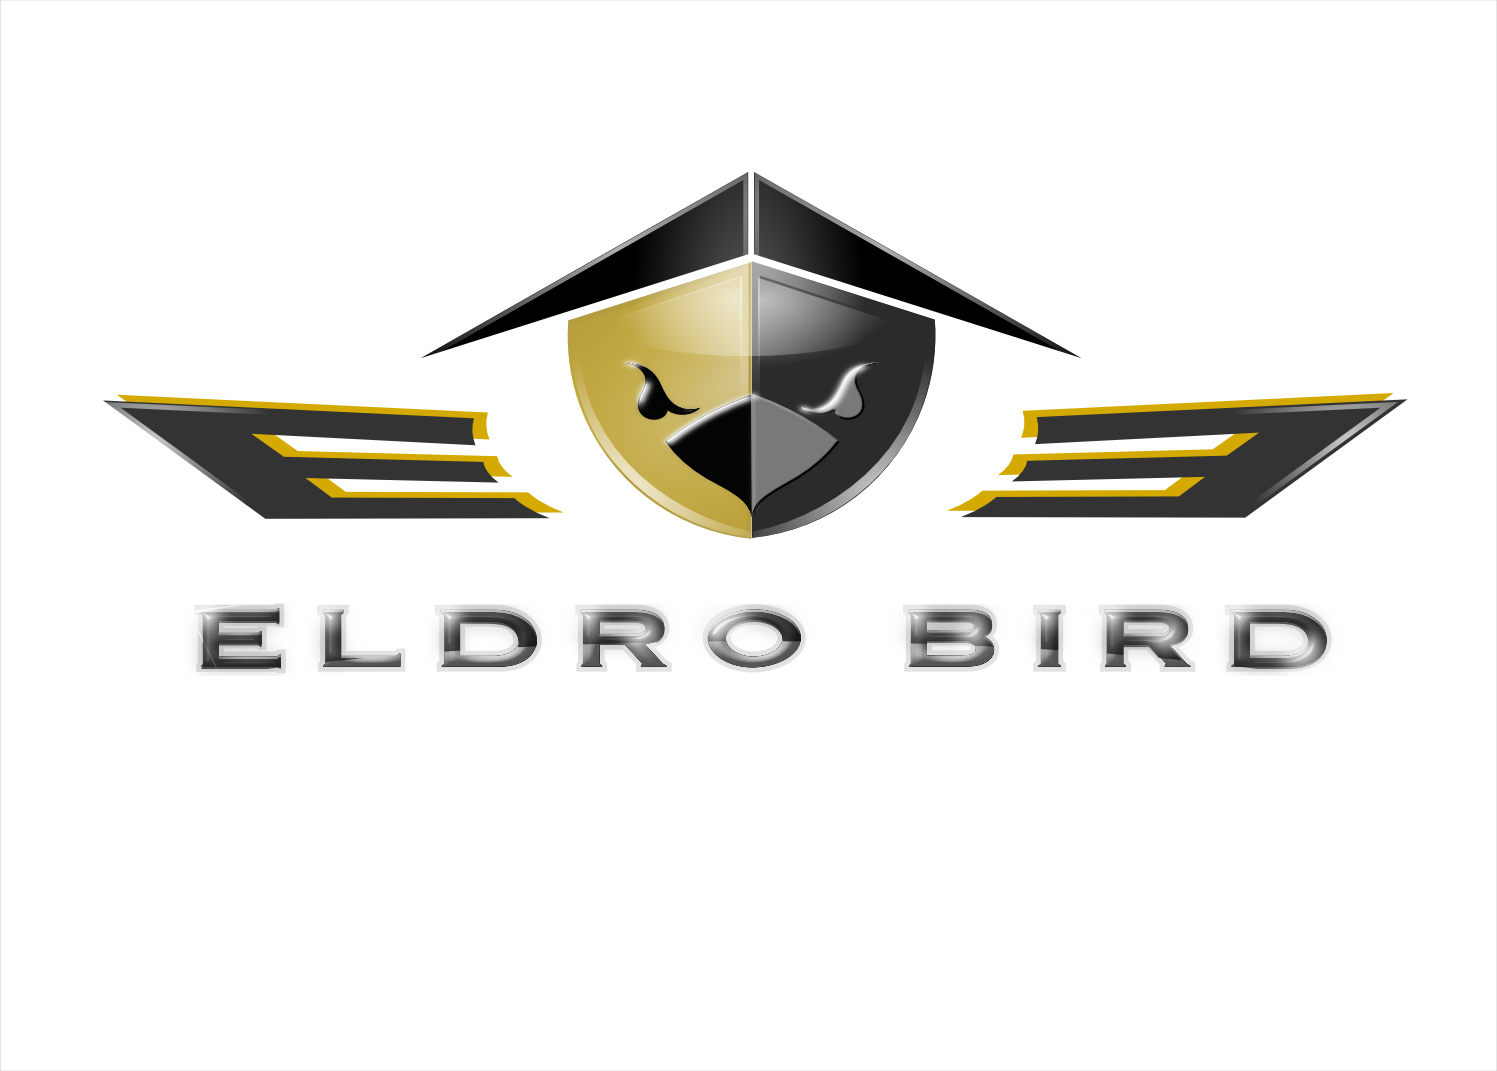 Logo Design by Joseph calunsag Cagaanan - Entry No. 76 in the Logo Design Contest New Logo Design for Bird car.